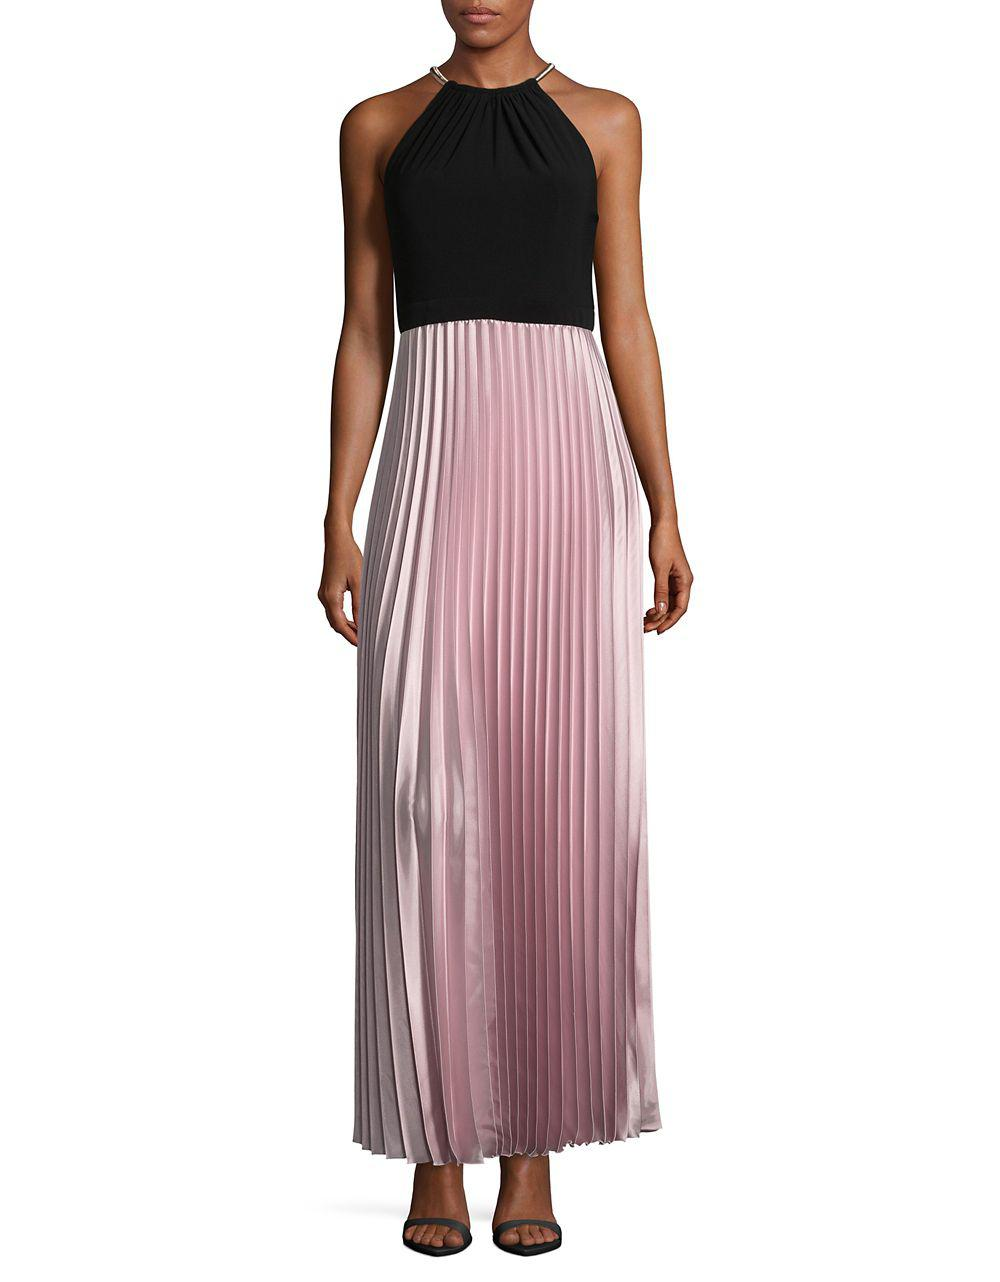 Lyst - Xscape Halter Dress With Pleated Skirt in Pink